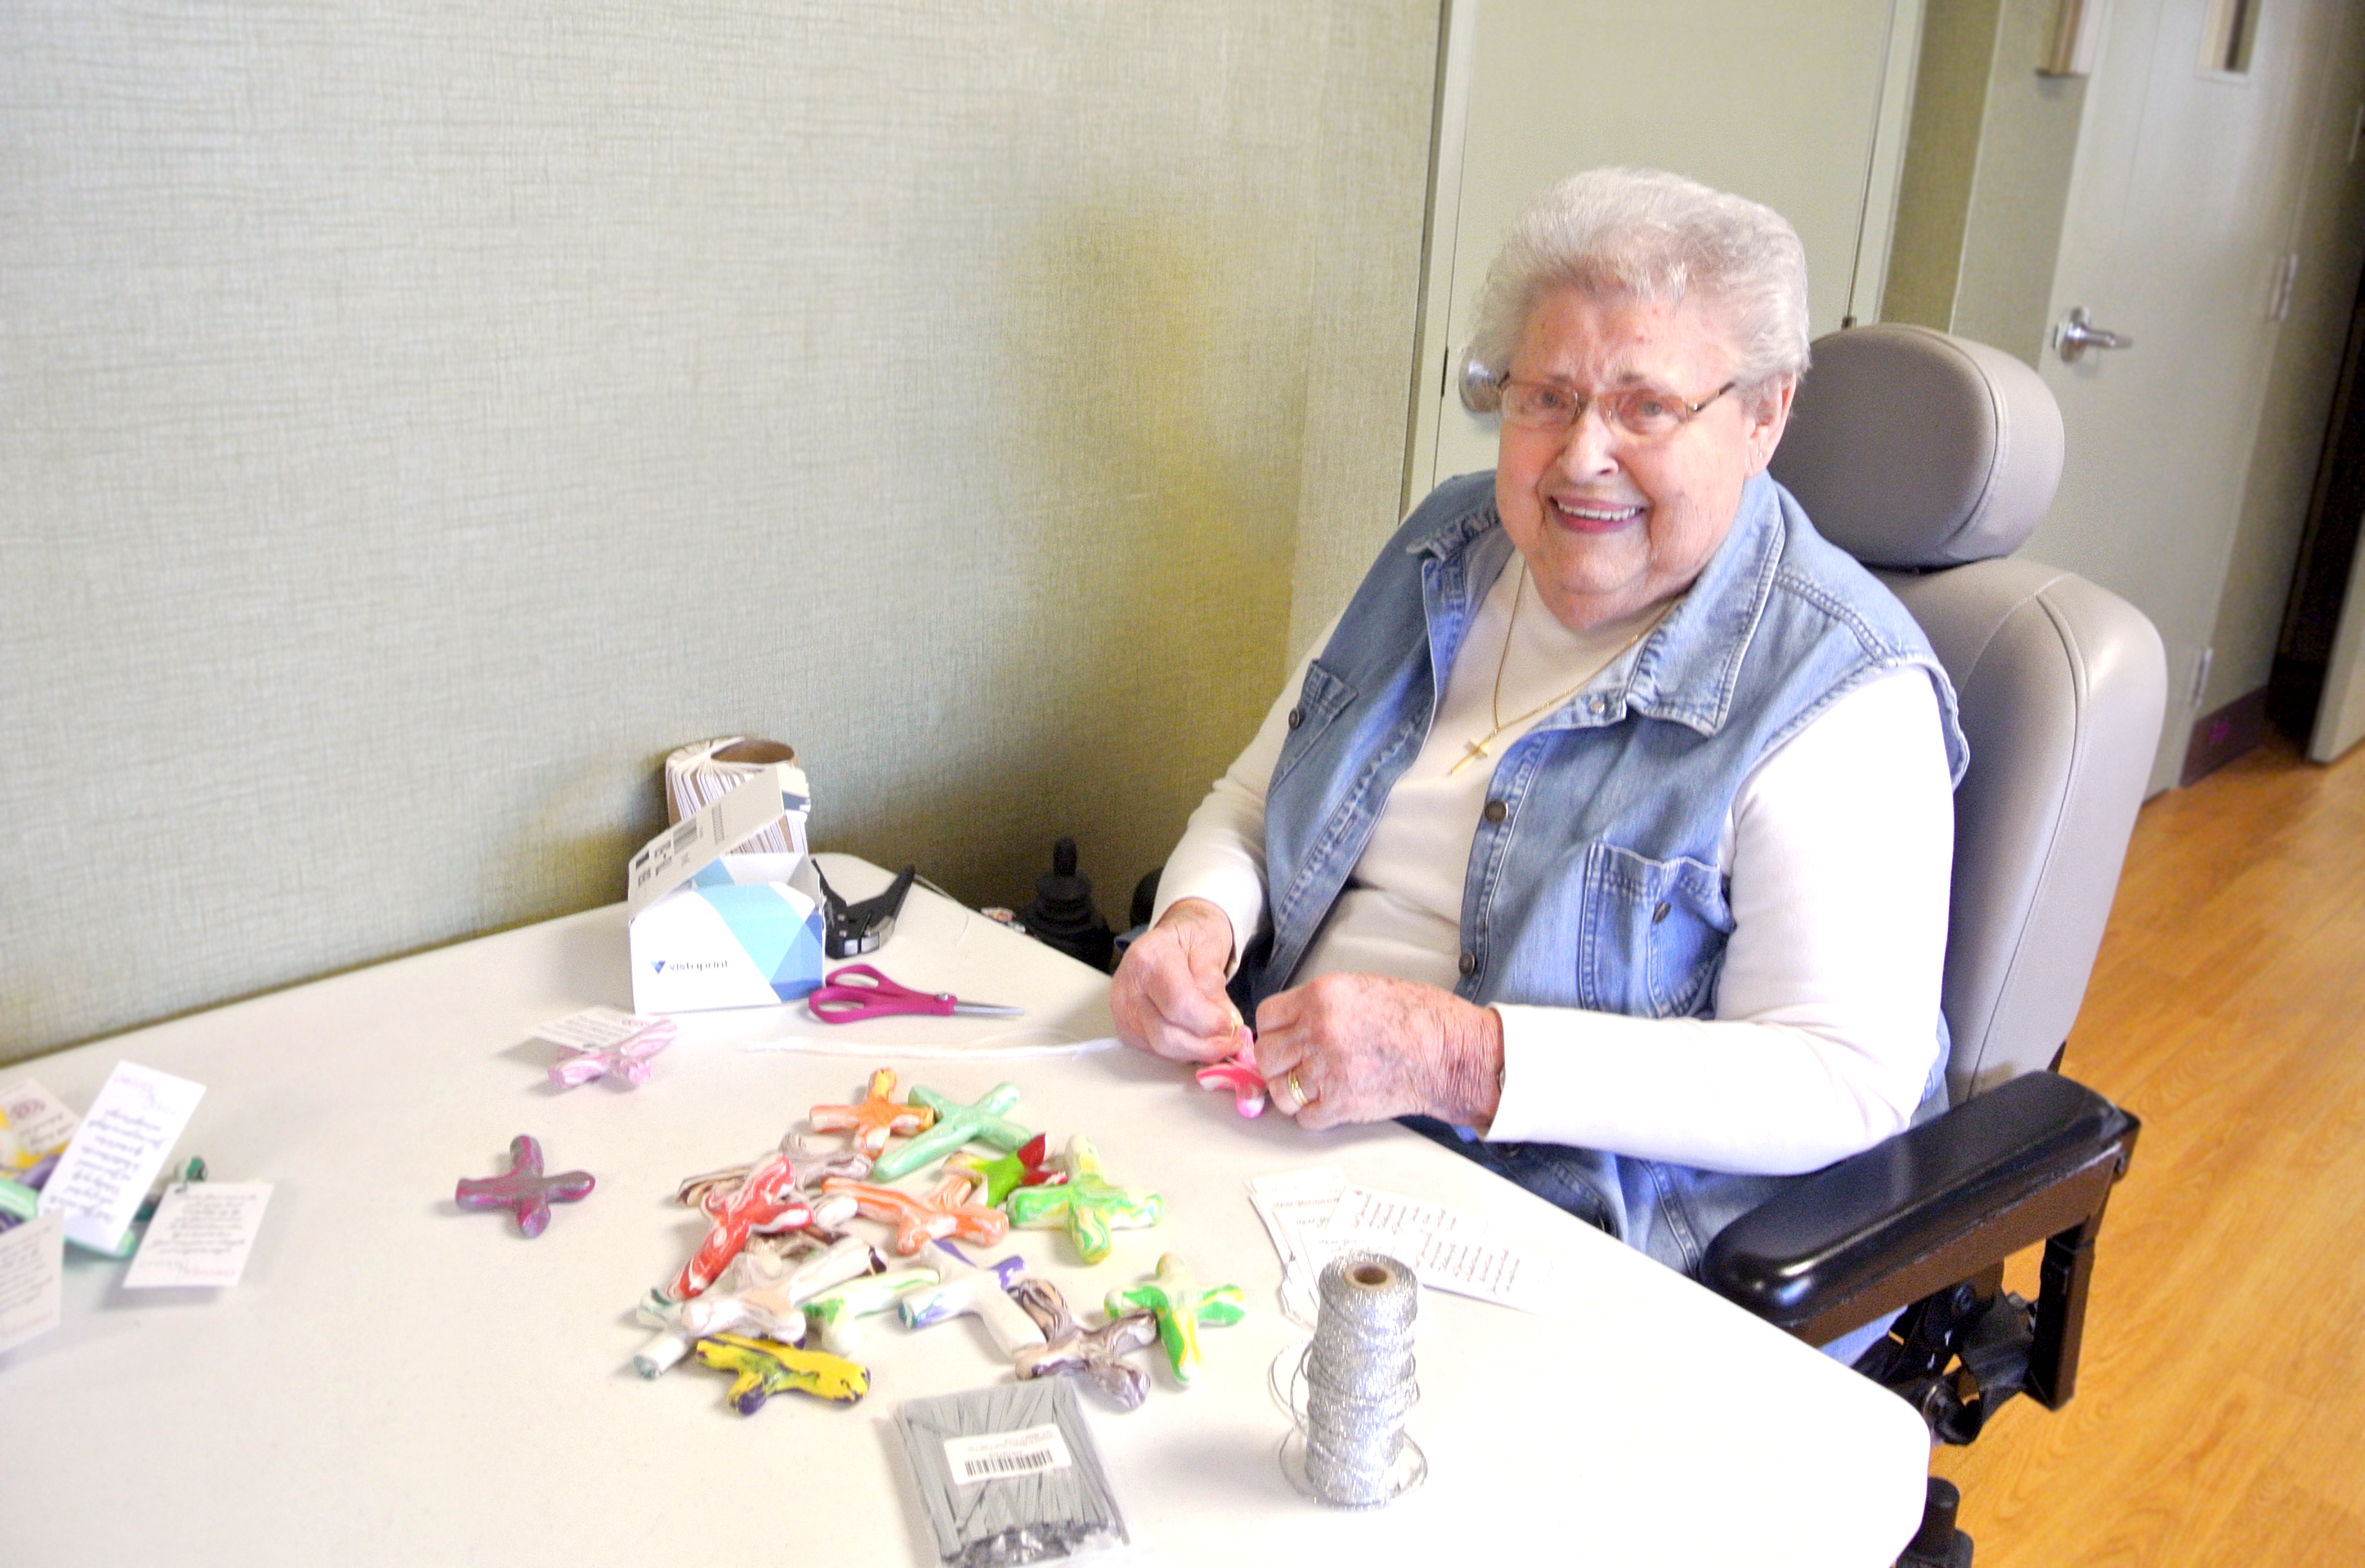 Perry Lutheran Home resident Virginia works on attaching tags with a Christian message to the prayer crosses. Used with permission / Perry Lutheran Home